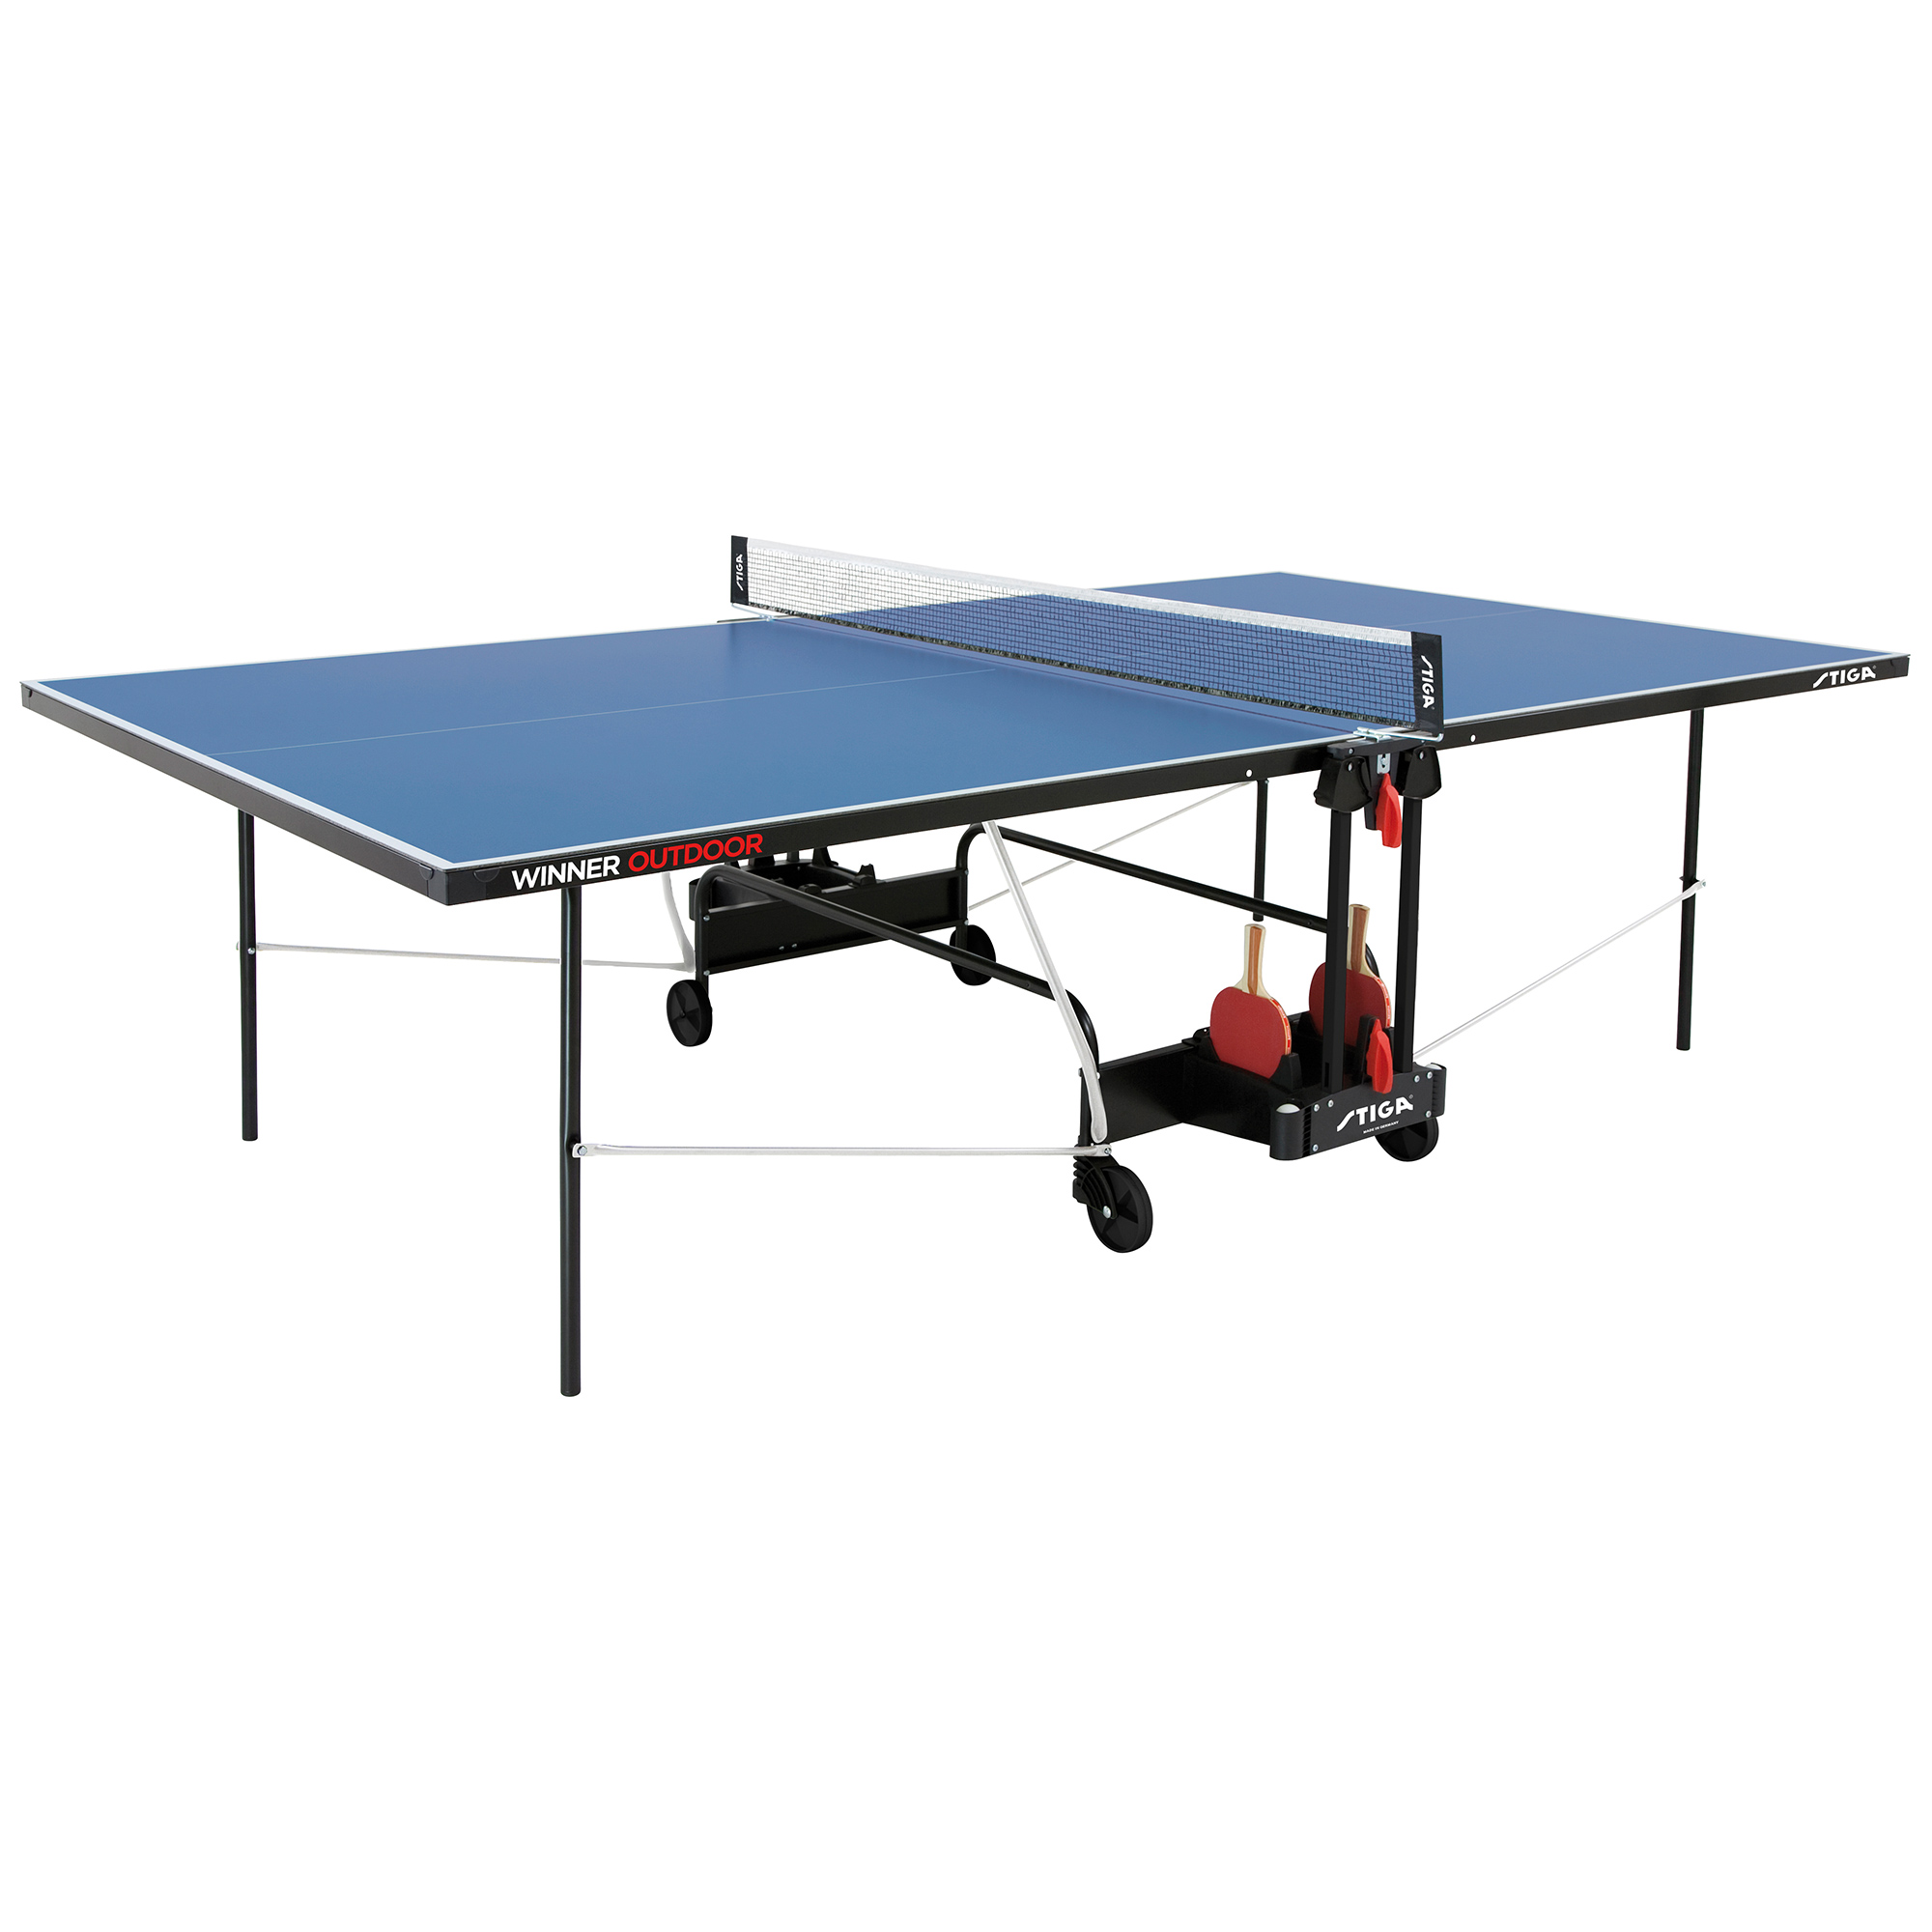 Outdoor table tennis table shop for cheap tables and - Stiga outdoor table tennis table ...